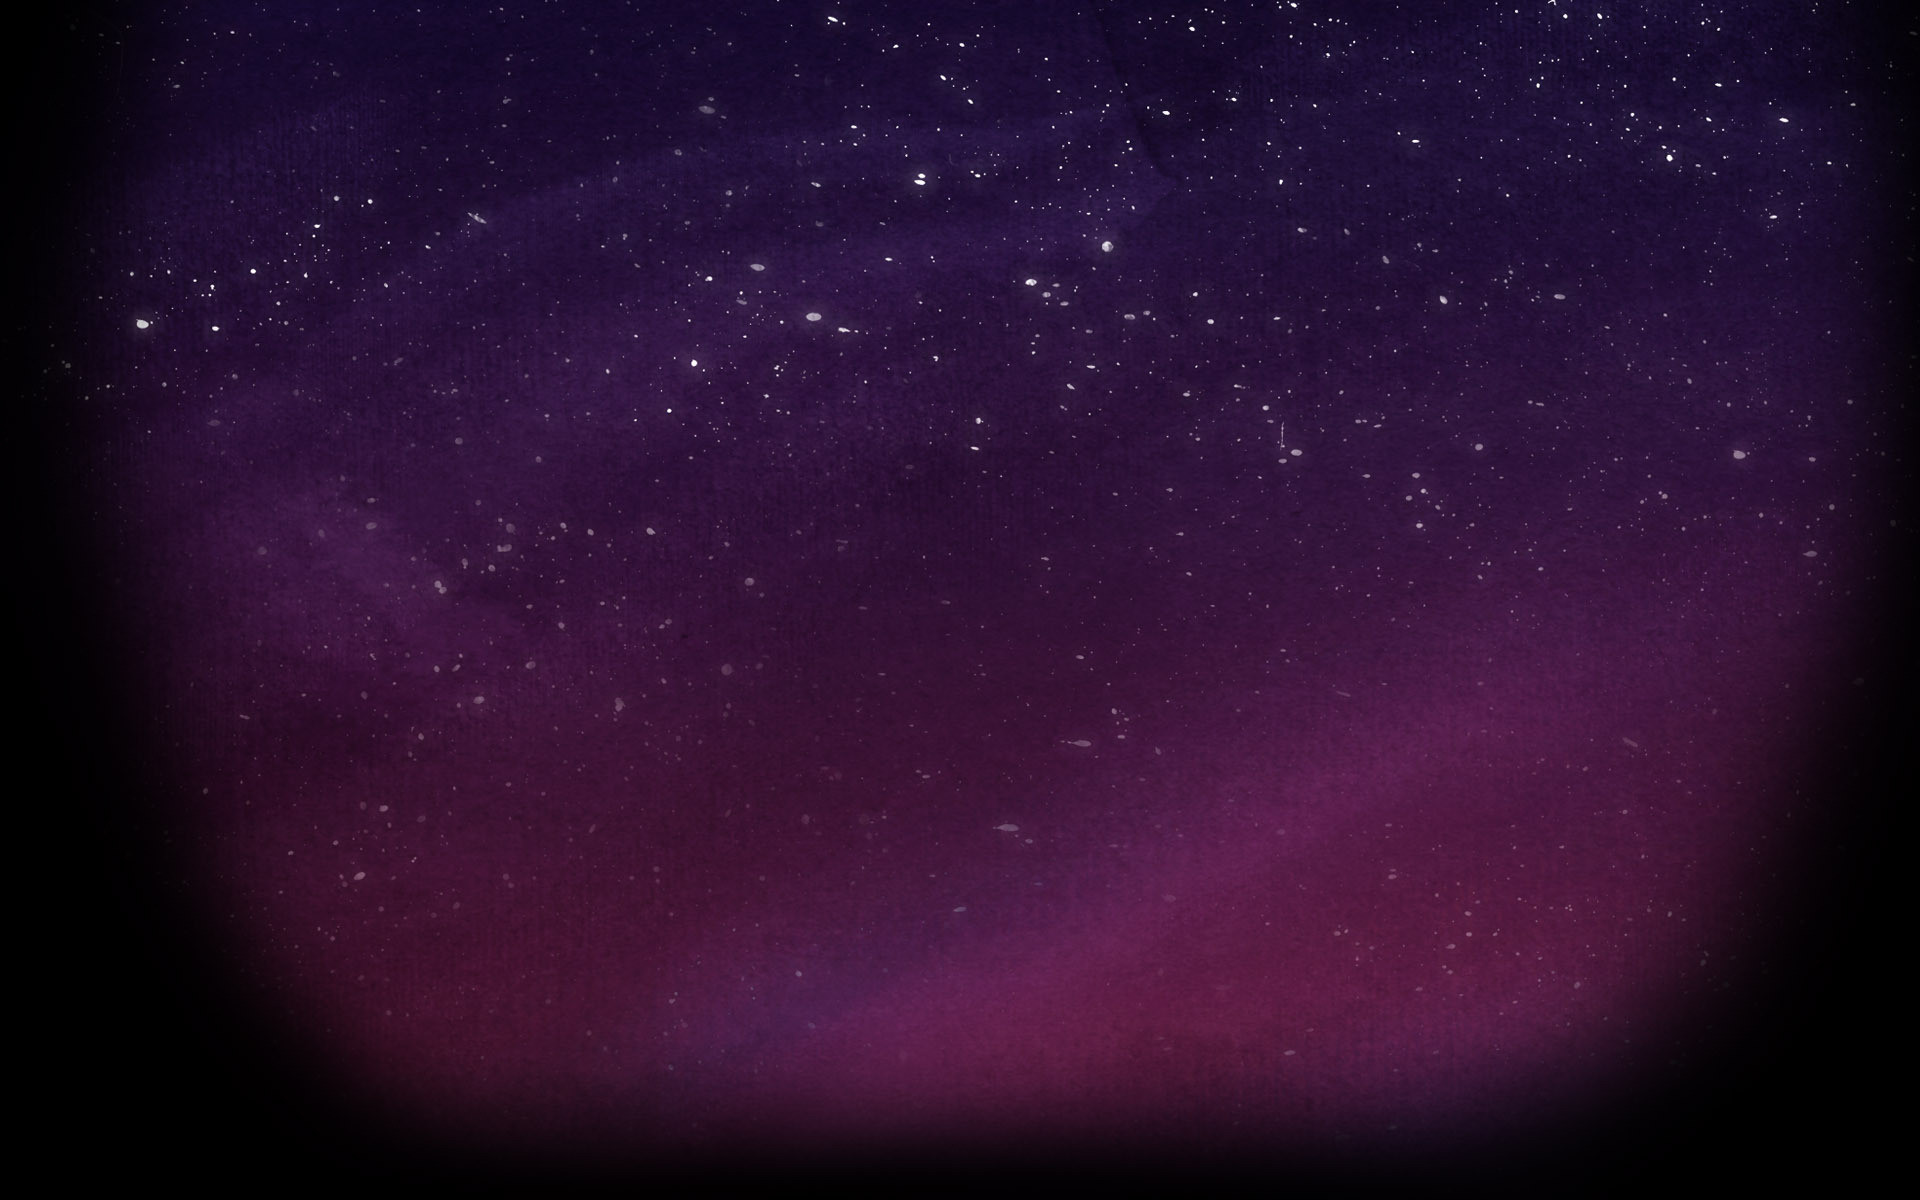 1920x1200 Image - Gone Home Background Starry Night.jpg | Steam Trading Cards Wiki |  FANDOM powered by Wikia